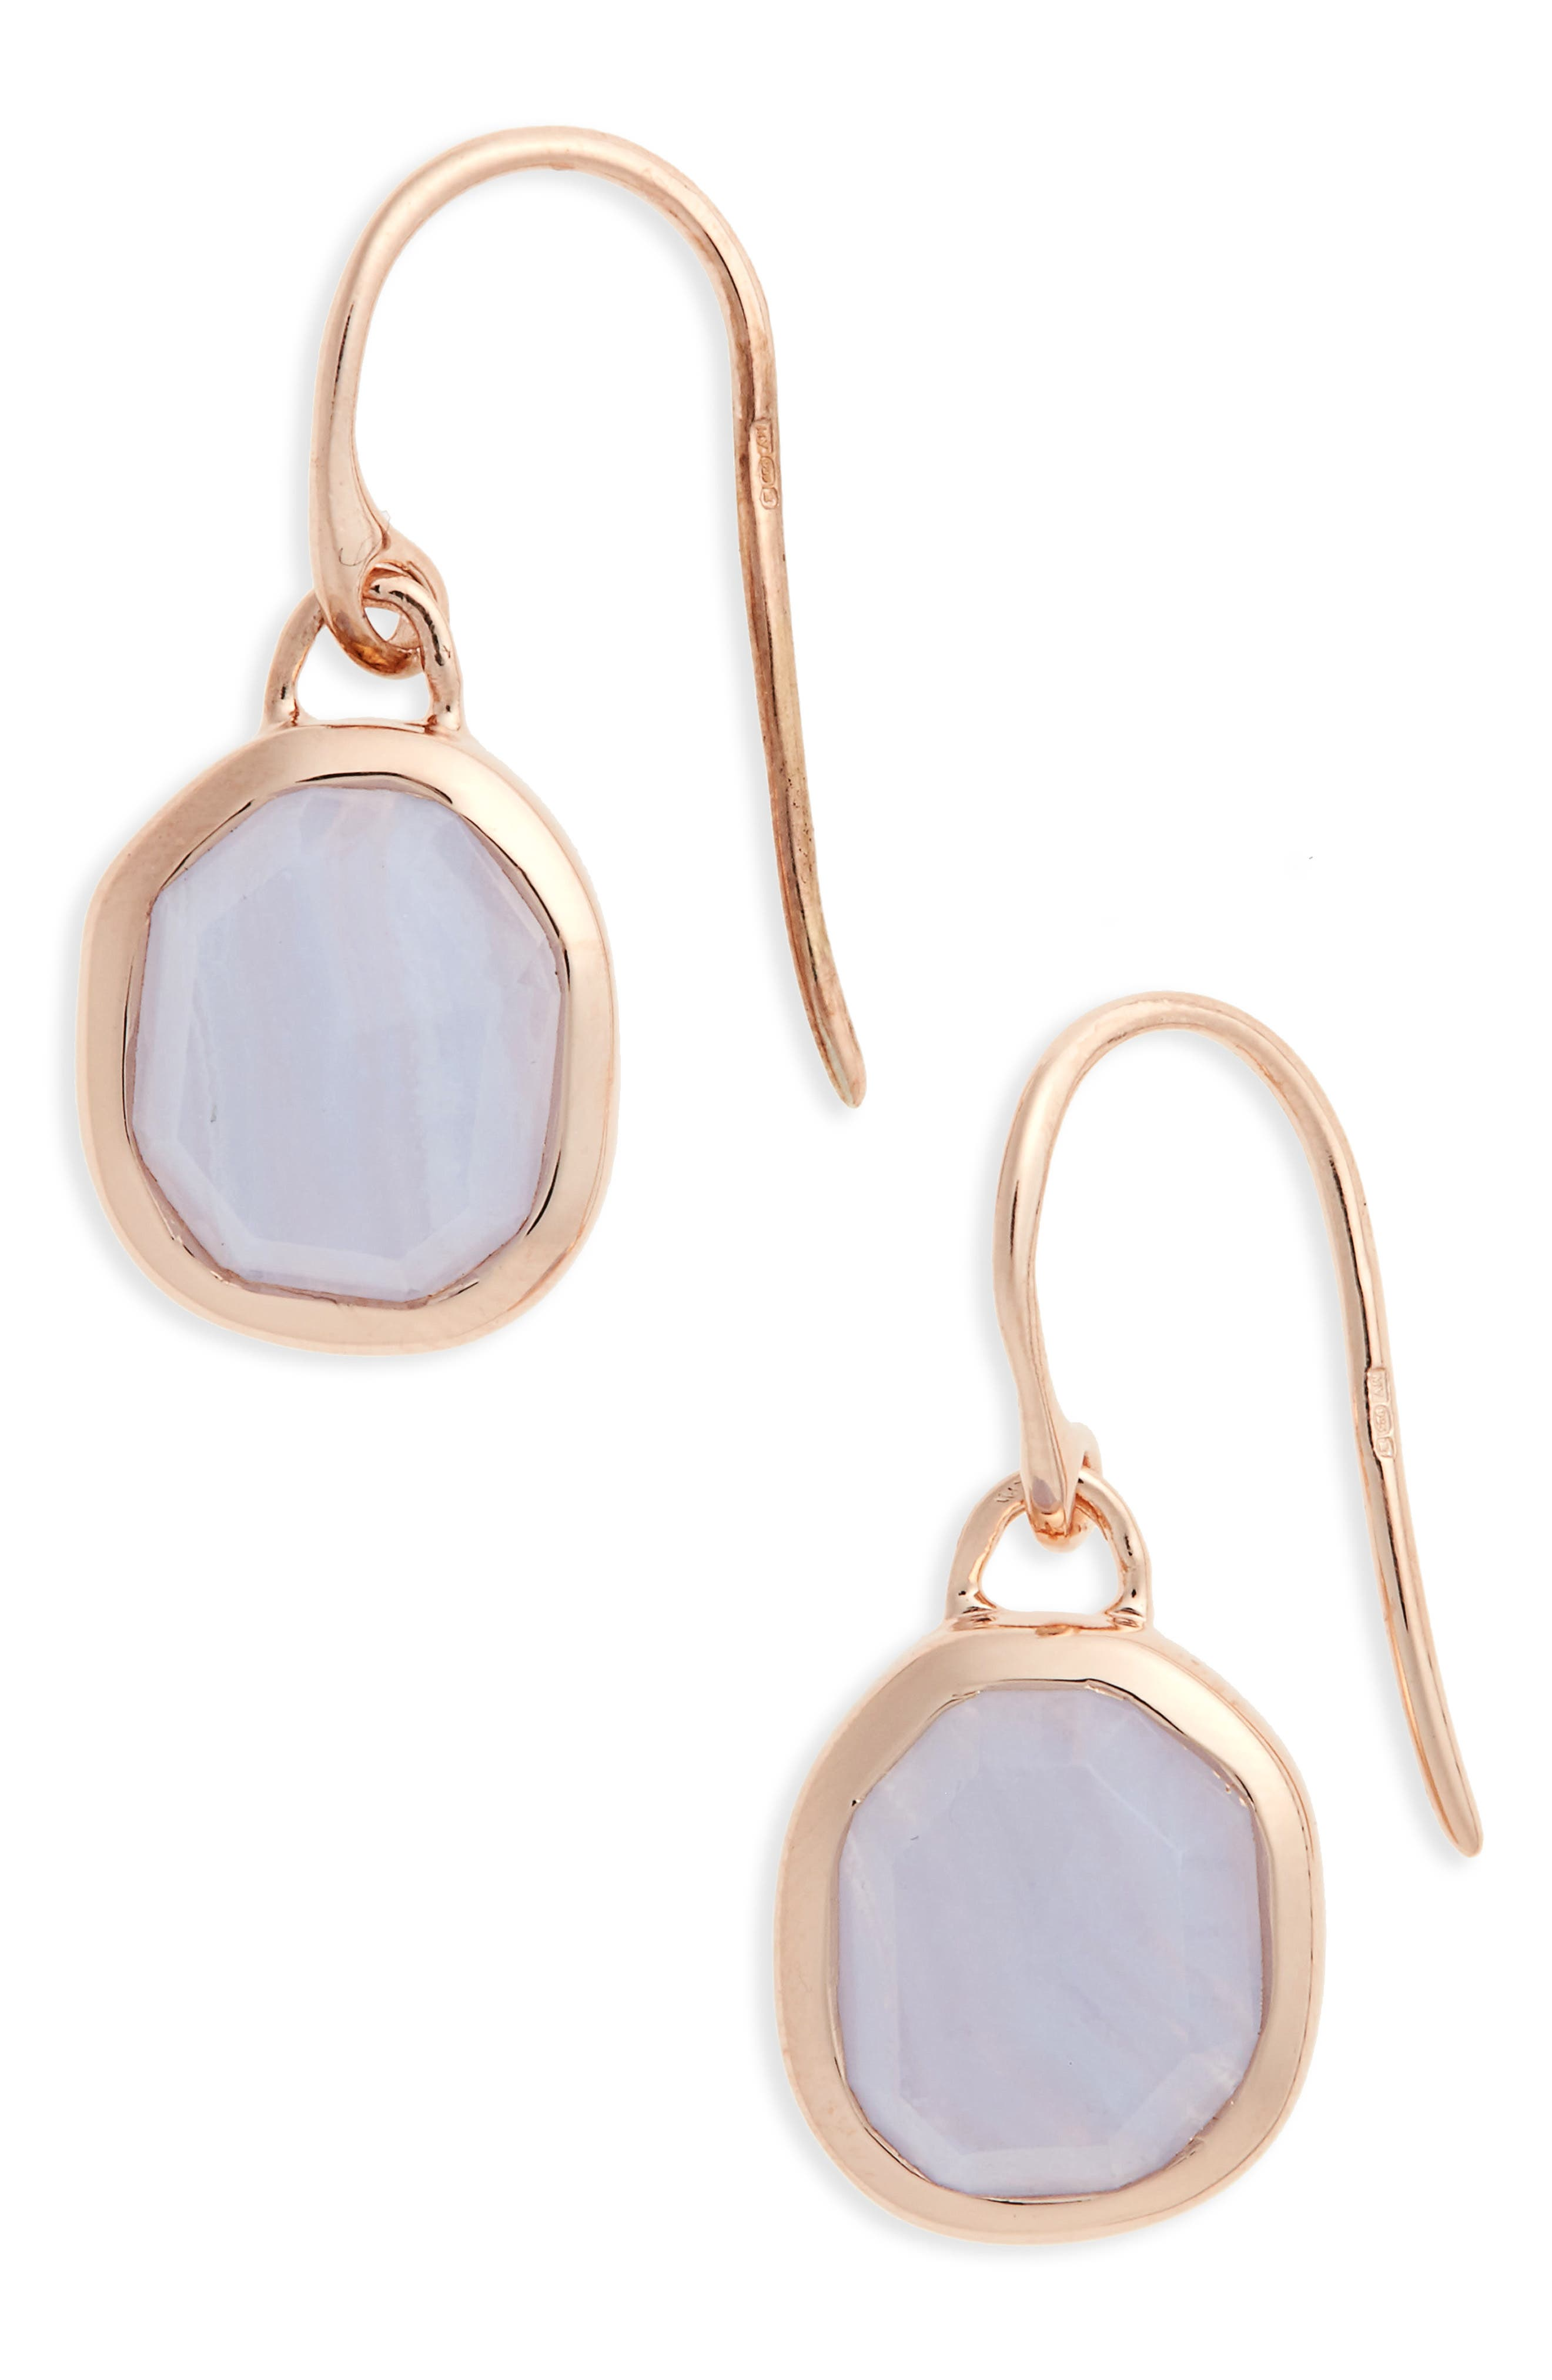 Main Image - Monica Vinader Siren Semiprecious Stone Drop Earrings